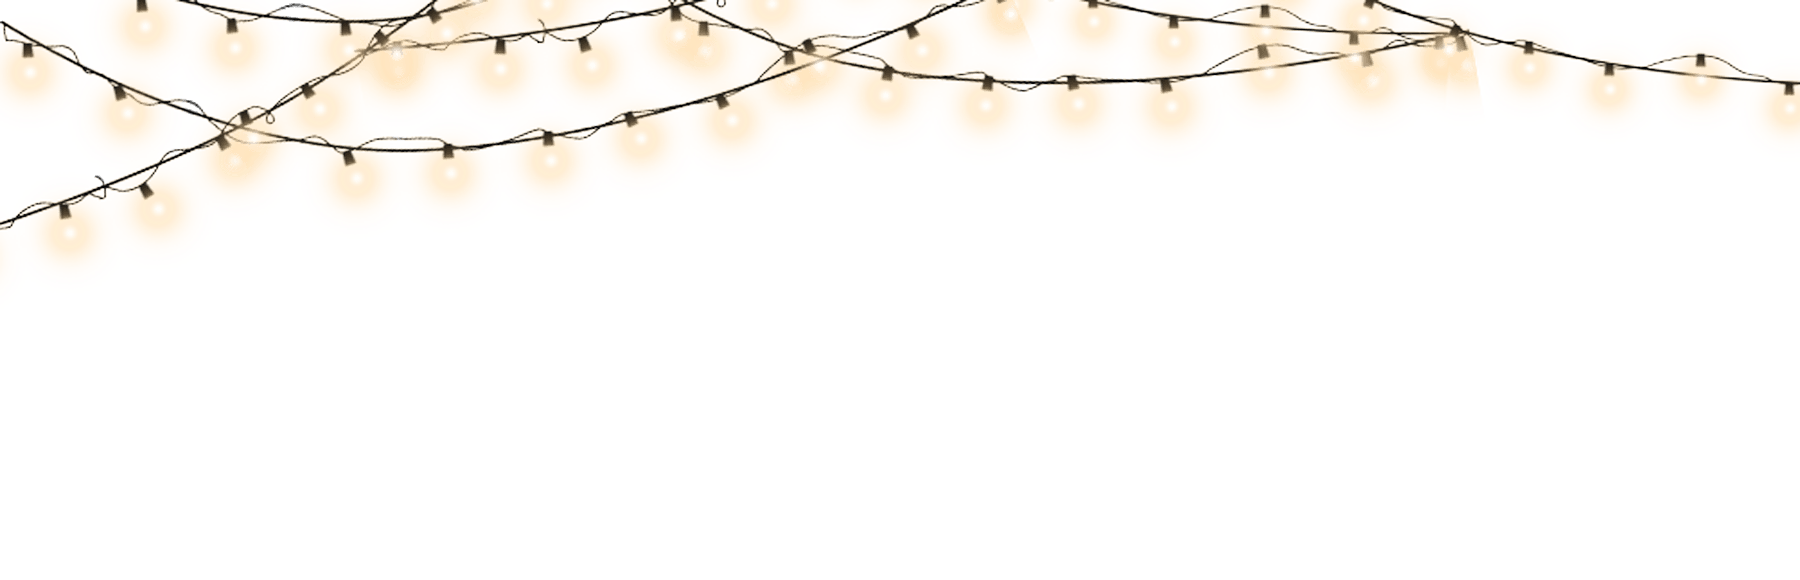 Lights-Foreground